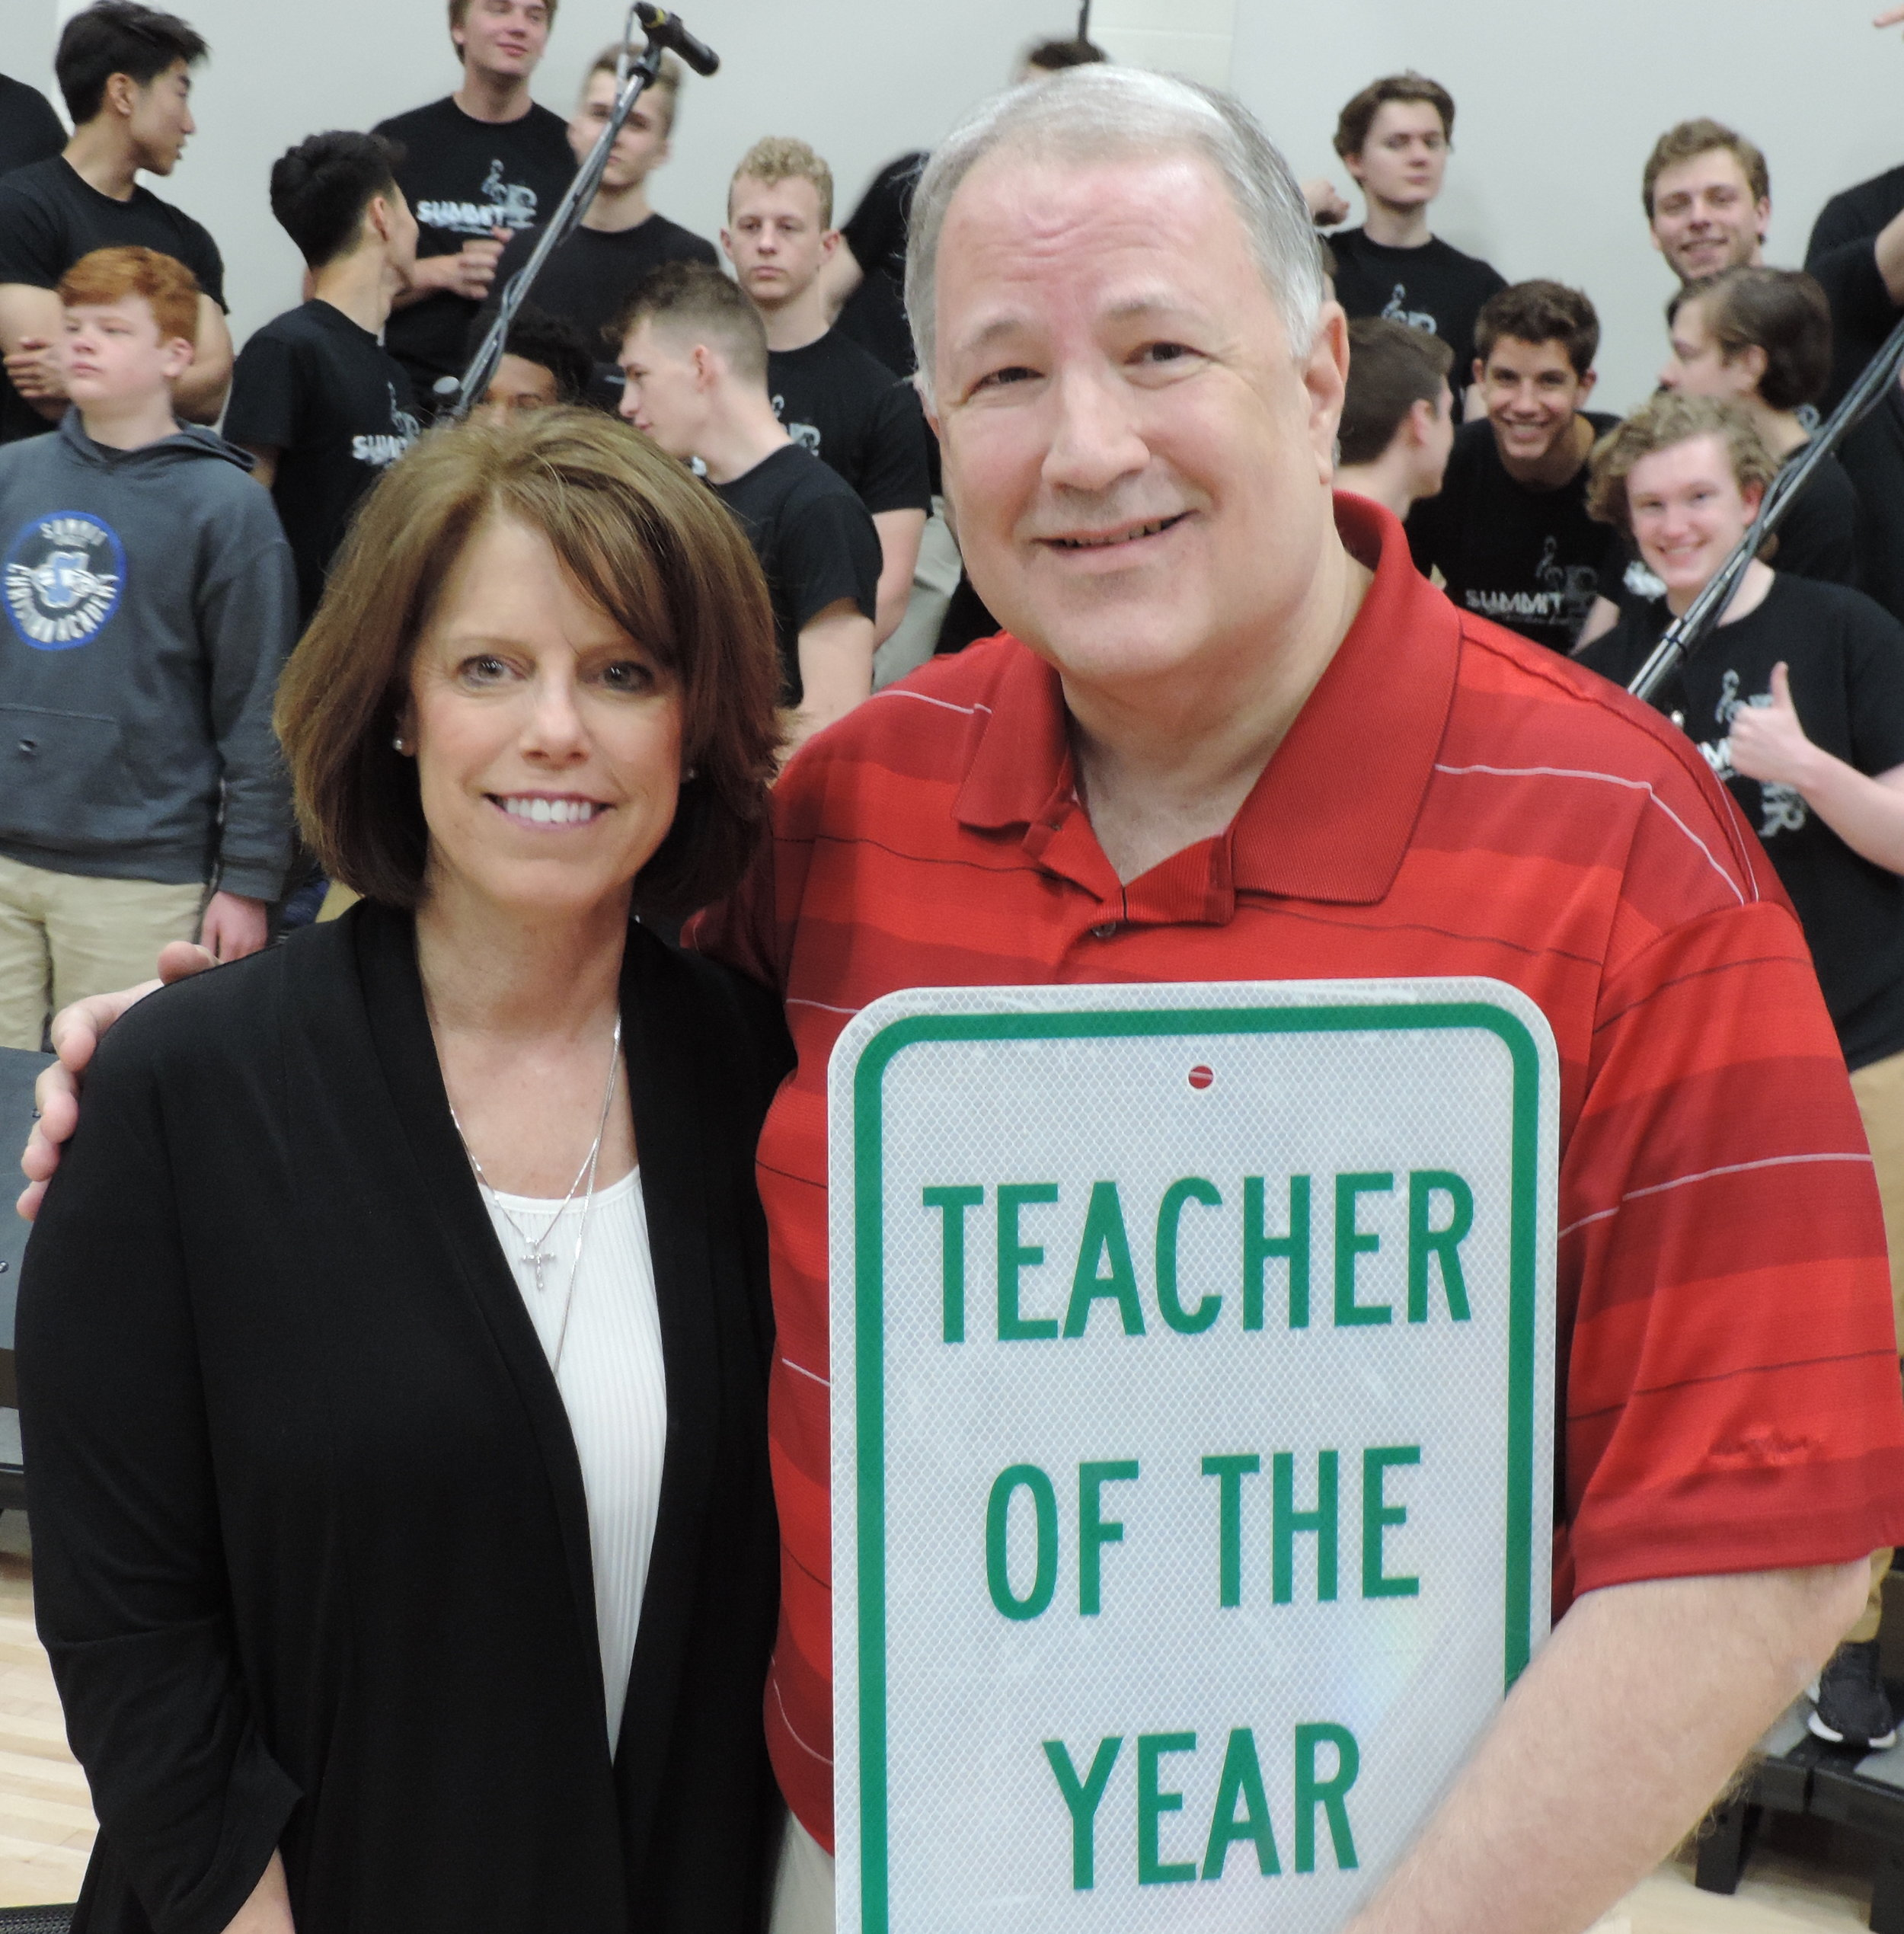 SCA 2019 Teacher of the Year, secondary social studies teacher Mr. Greg Finch, pictured with SCA Head of School Linda Harrelson. (Photo courtesy Summit Christian Academy)